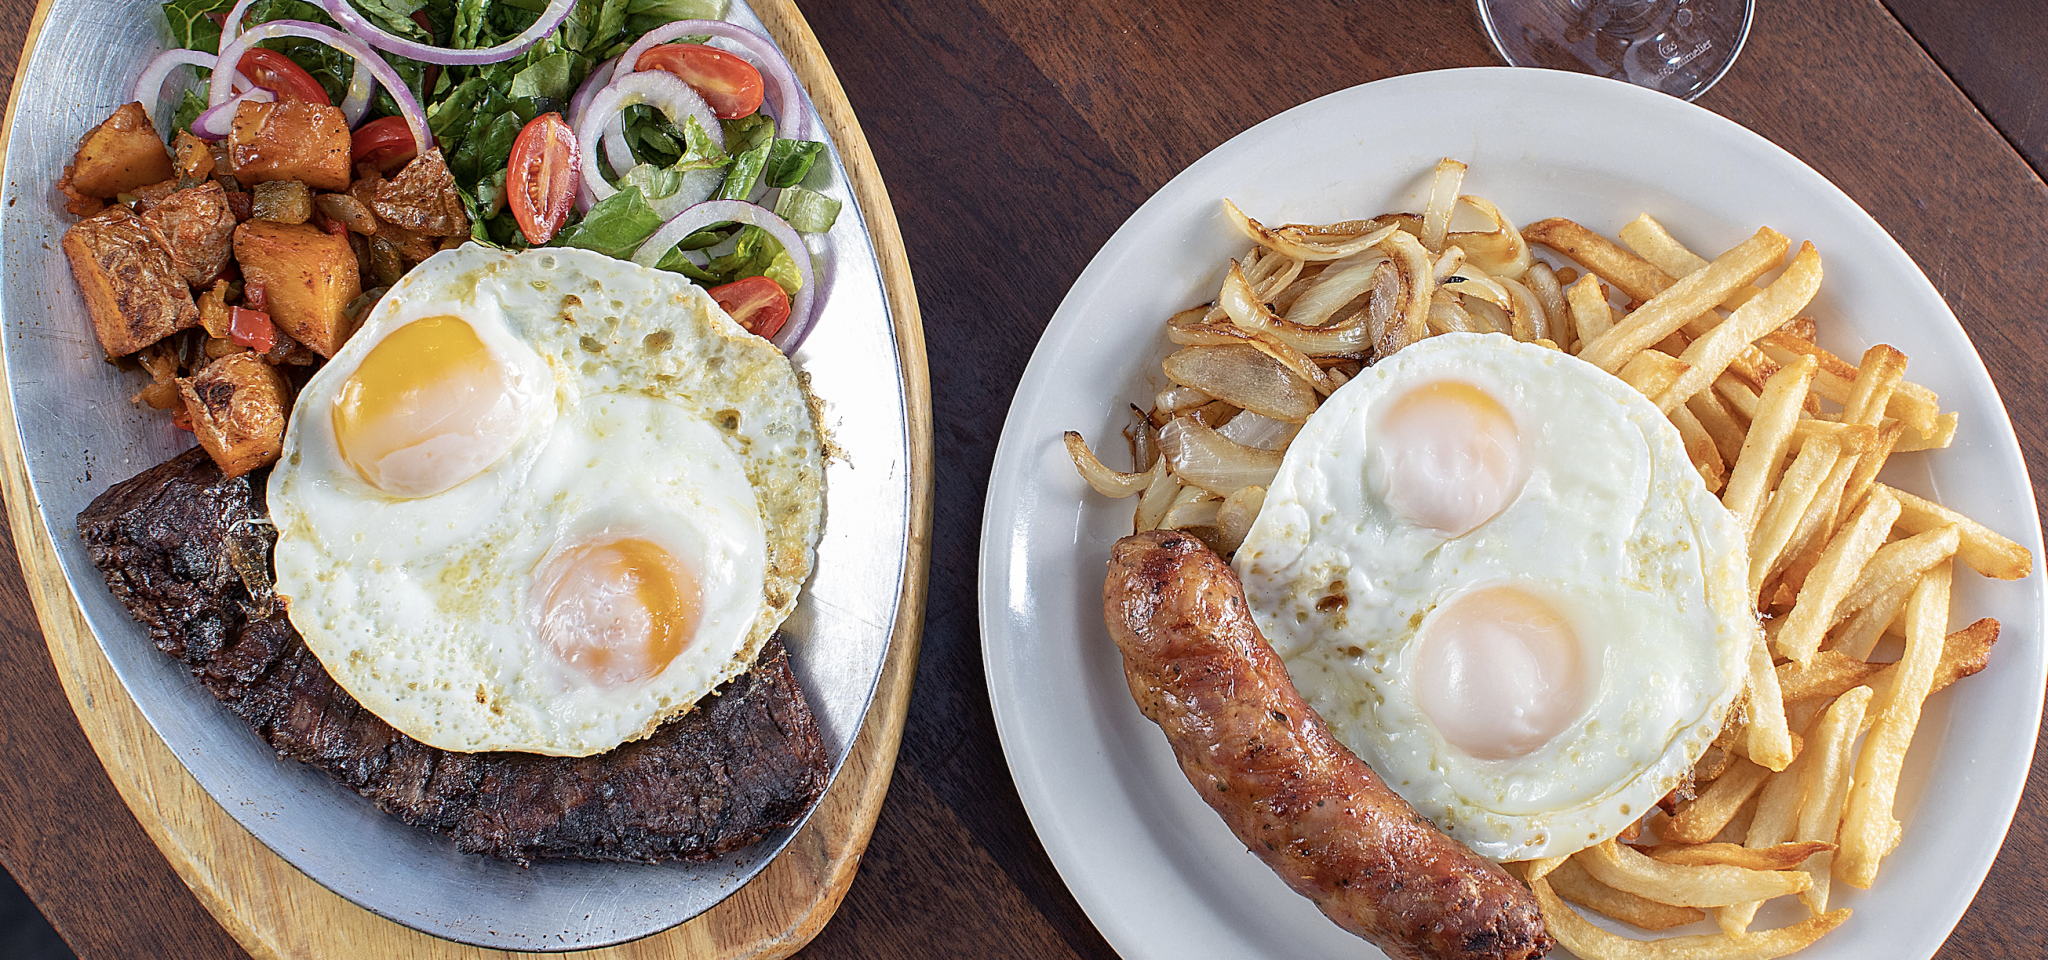 Brunch at Buenos Aires Brings Argentina to the East Village